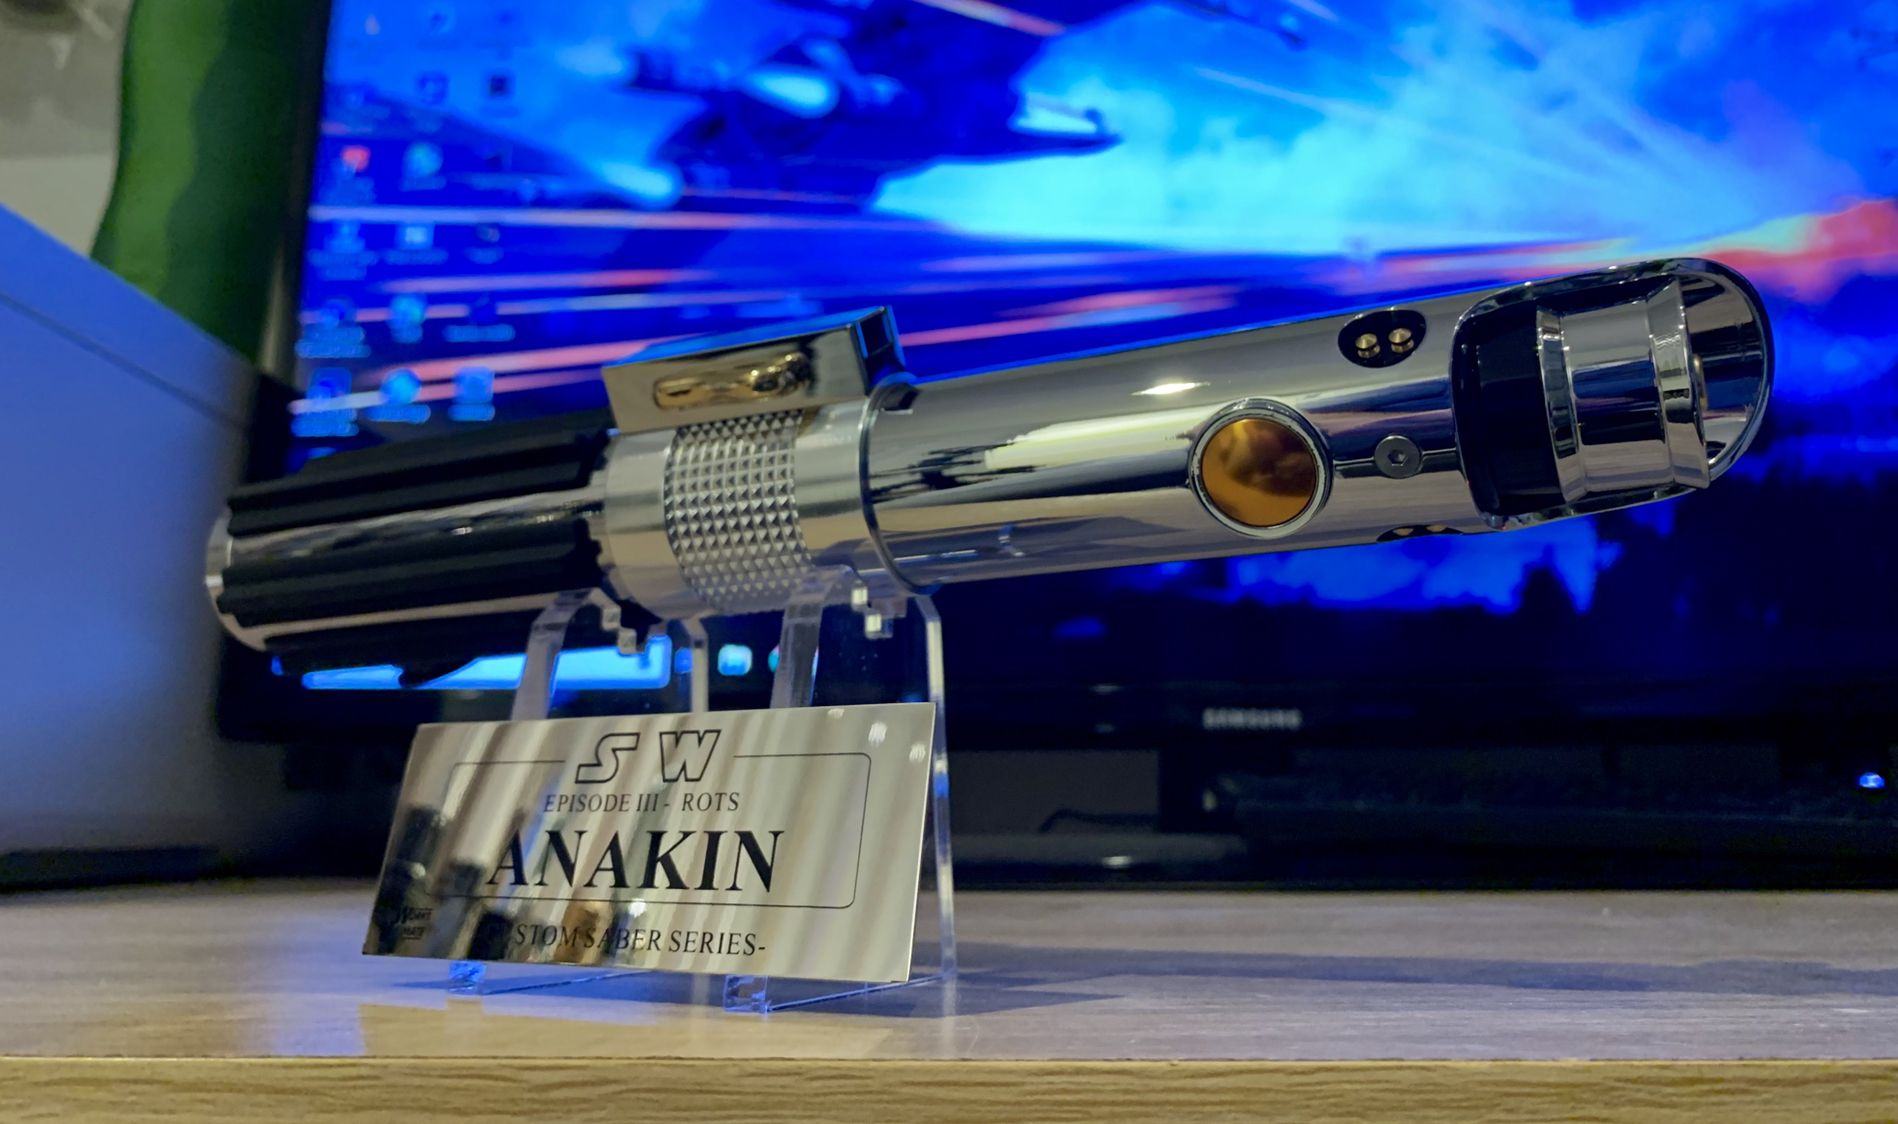 Pin by Justin Yahoudy on Lightsaber | Lightsaber, Anakin ...